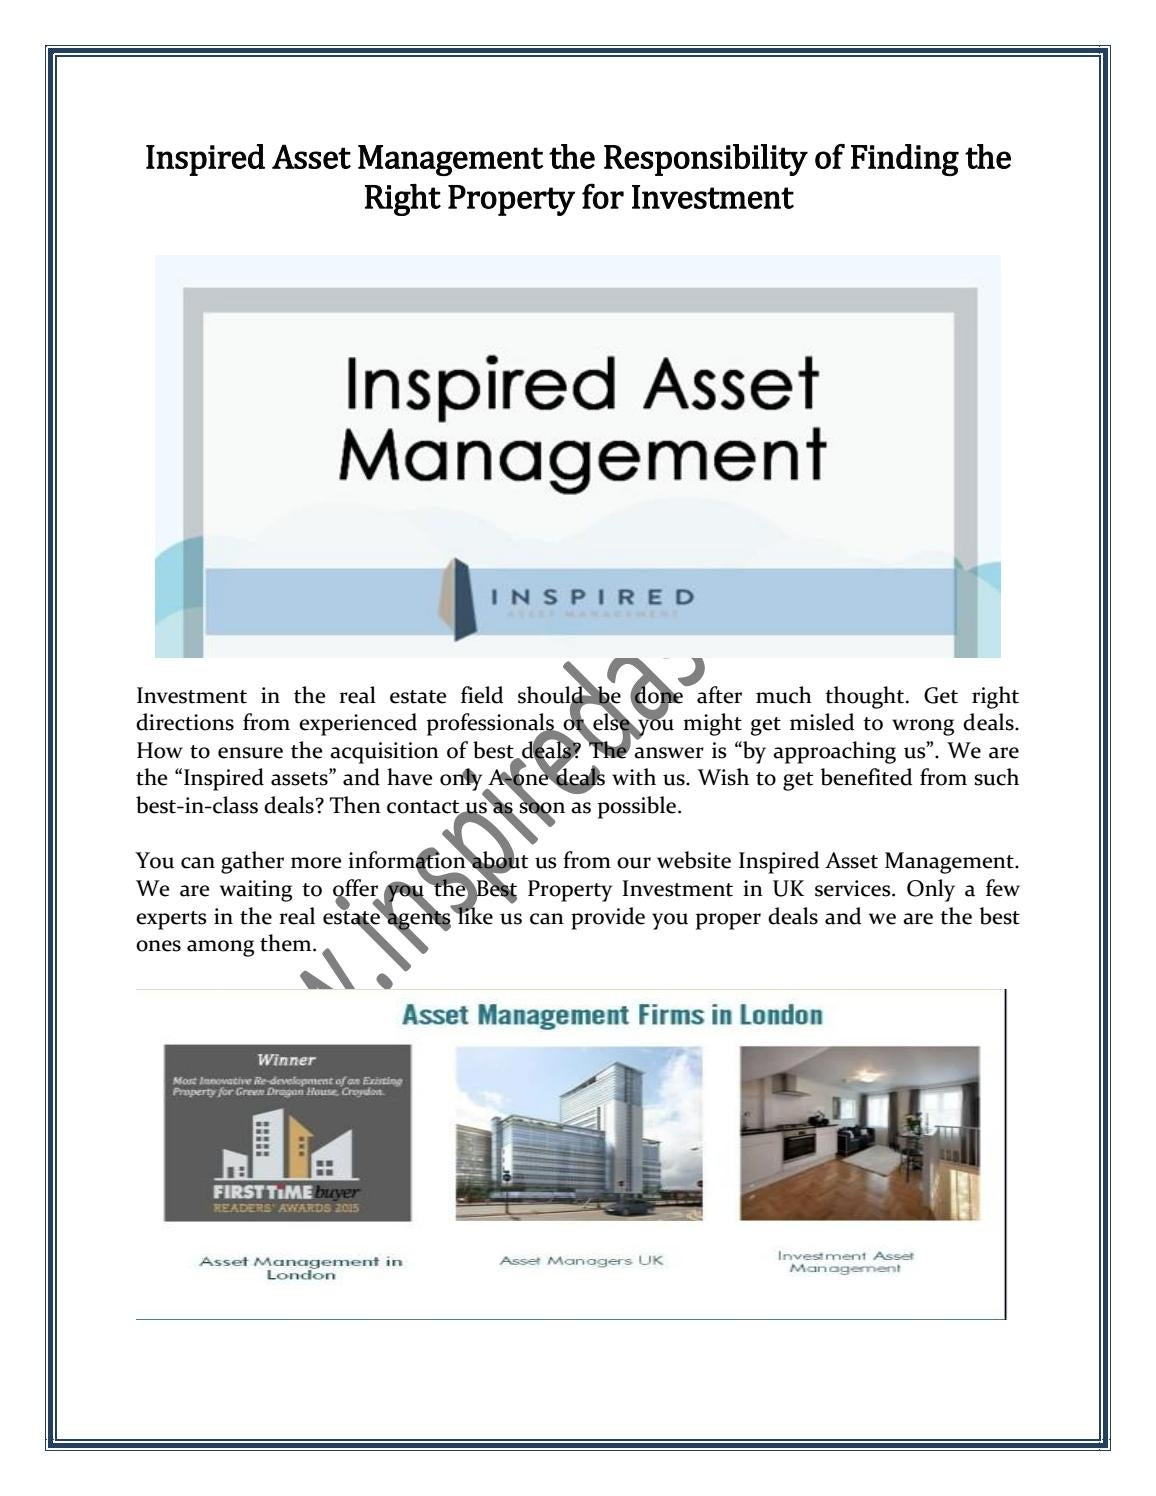 Inspired Asset Management the Responsibility of Finding the Right